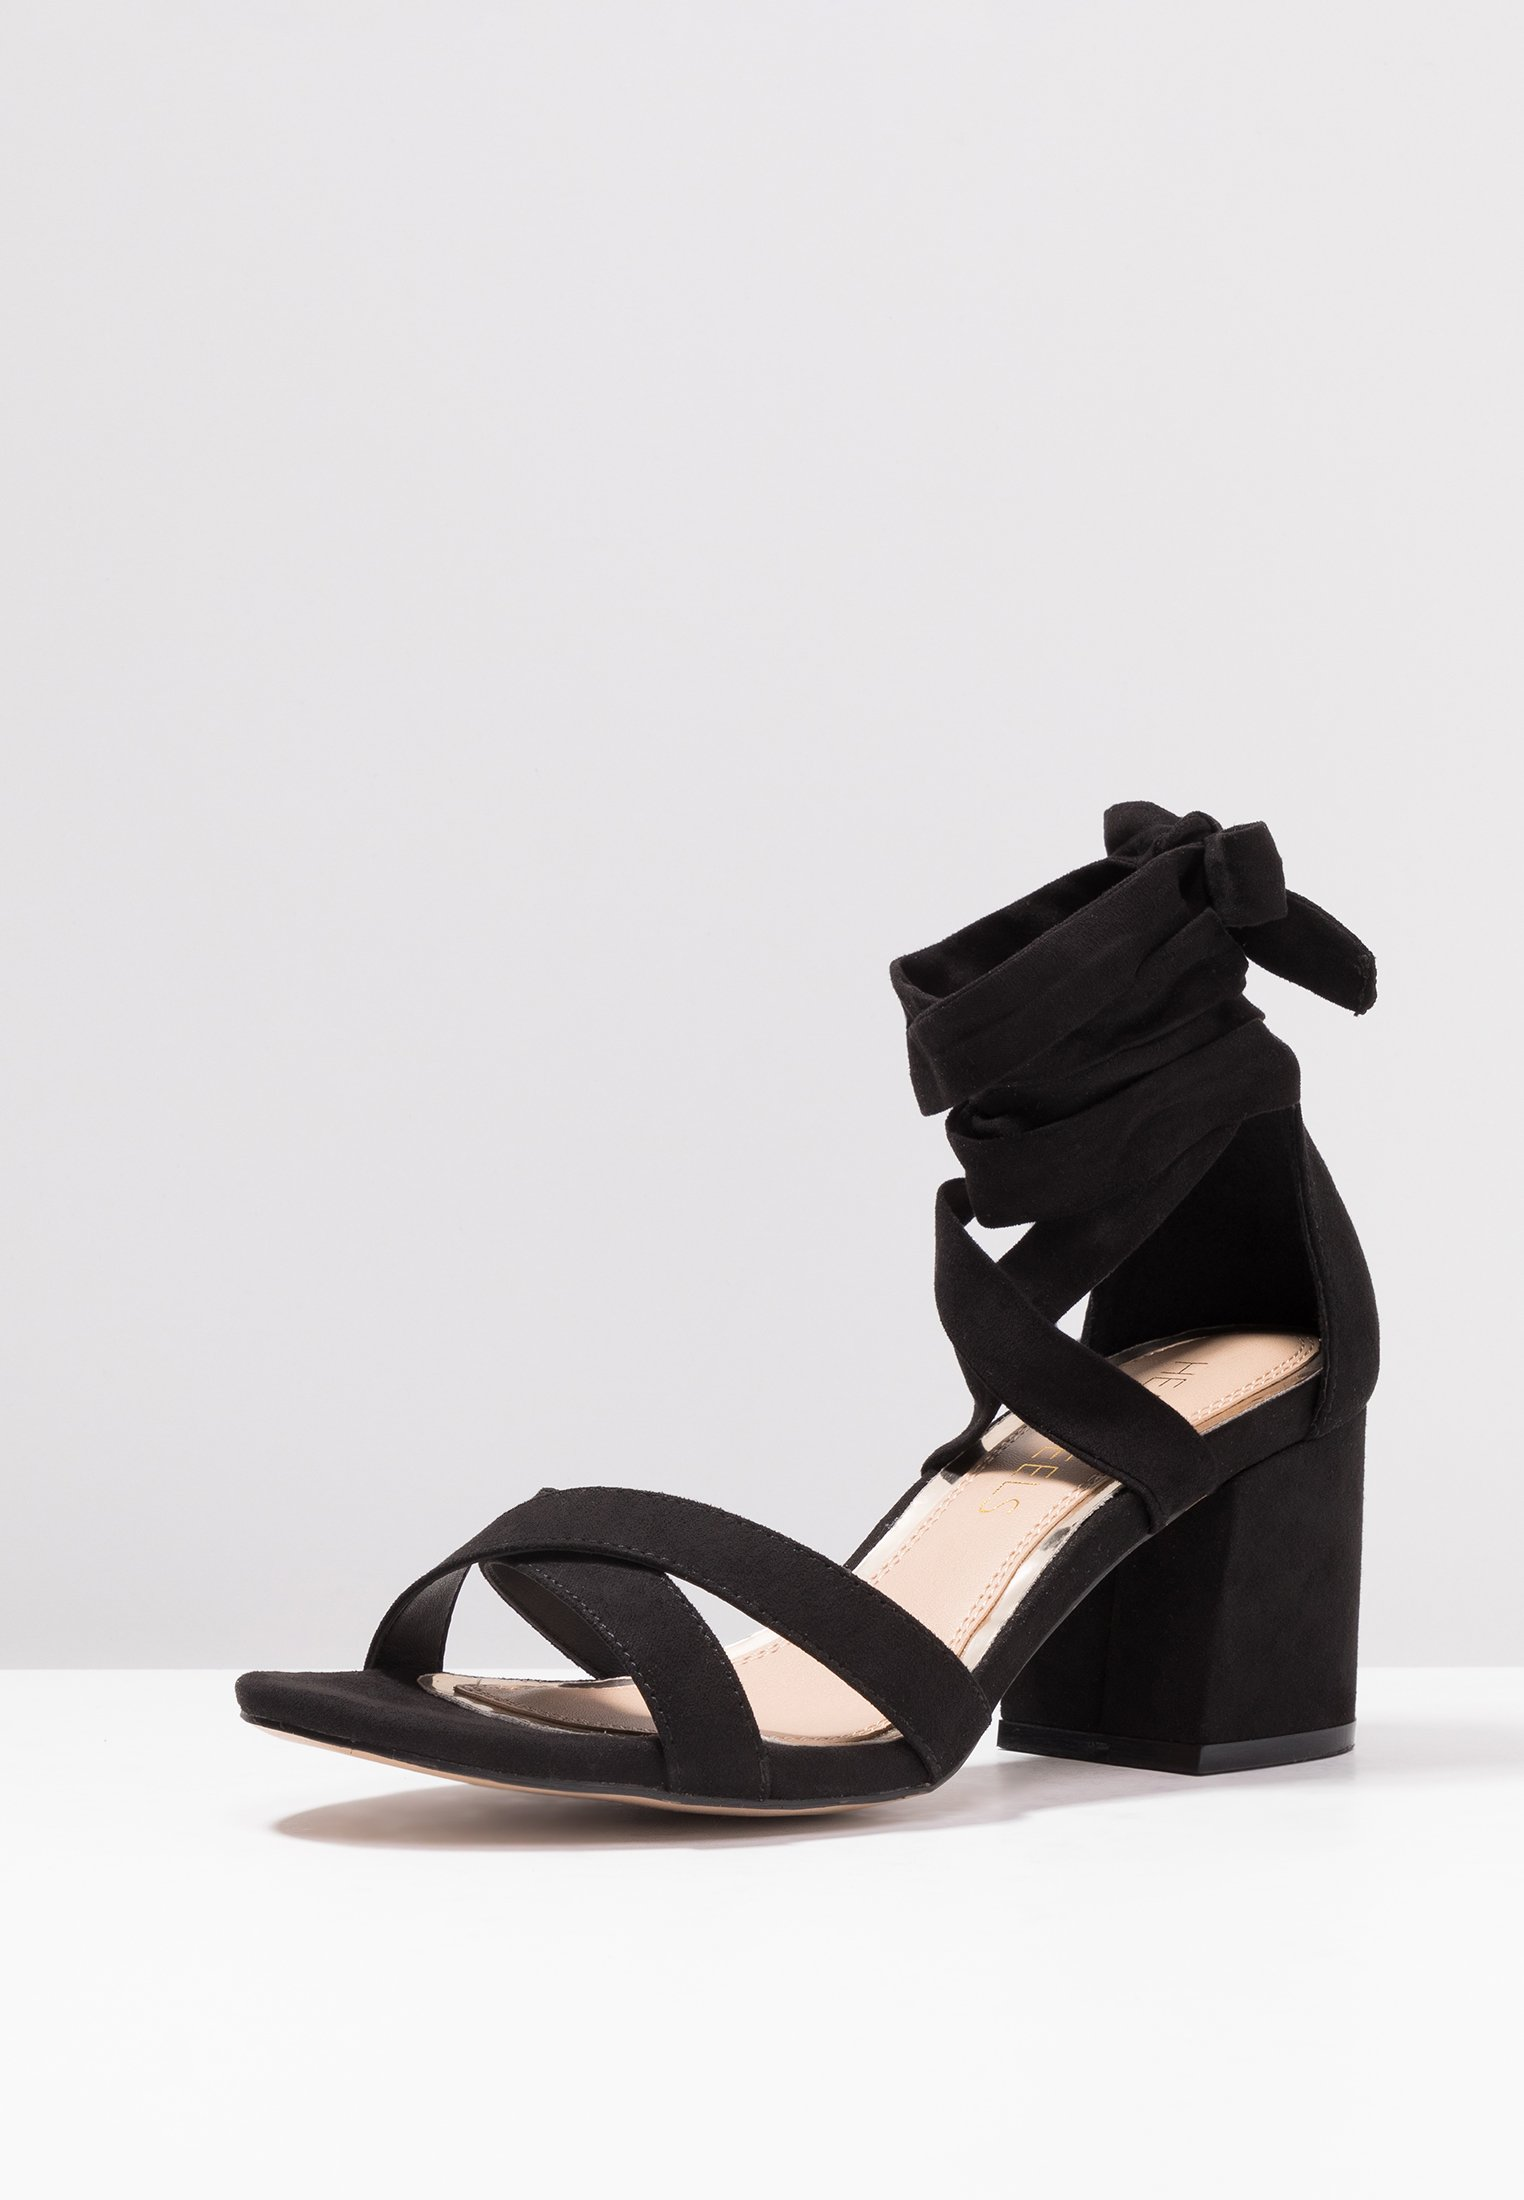 Dune Black Heels By Over MaybeSandales Head SpjLUGqMzV